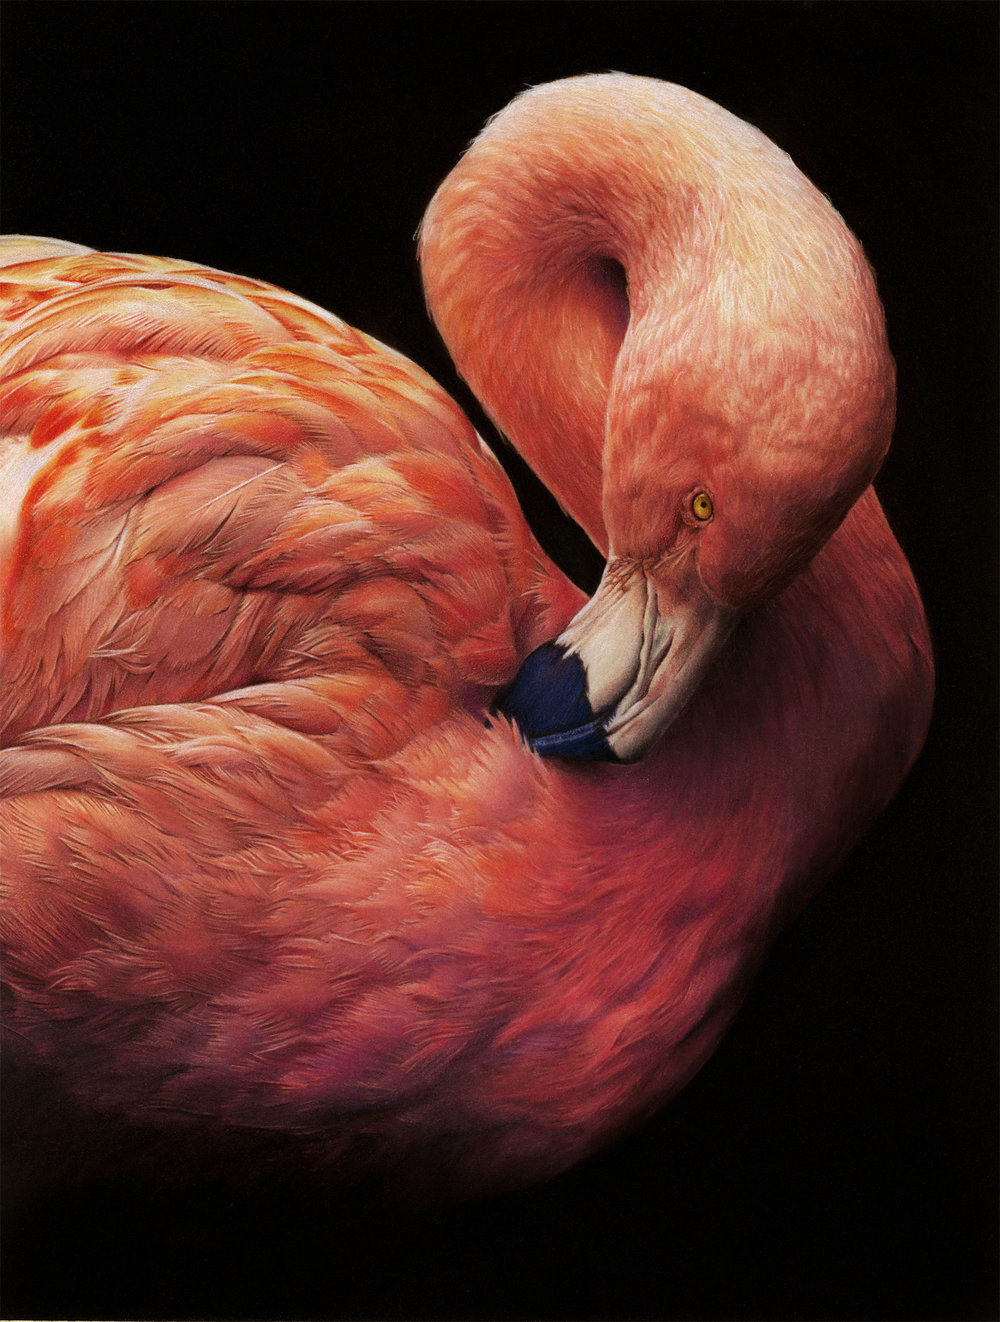 Nicola Wilkinson, Pretty in Pink, Coloured Pencil on Fisher400 Paper, 44.5cm x 33,5cm x 0.2cm,  https://www.facebook.com/nicolawilkinsonart/